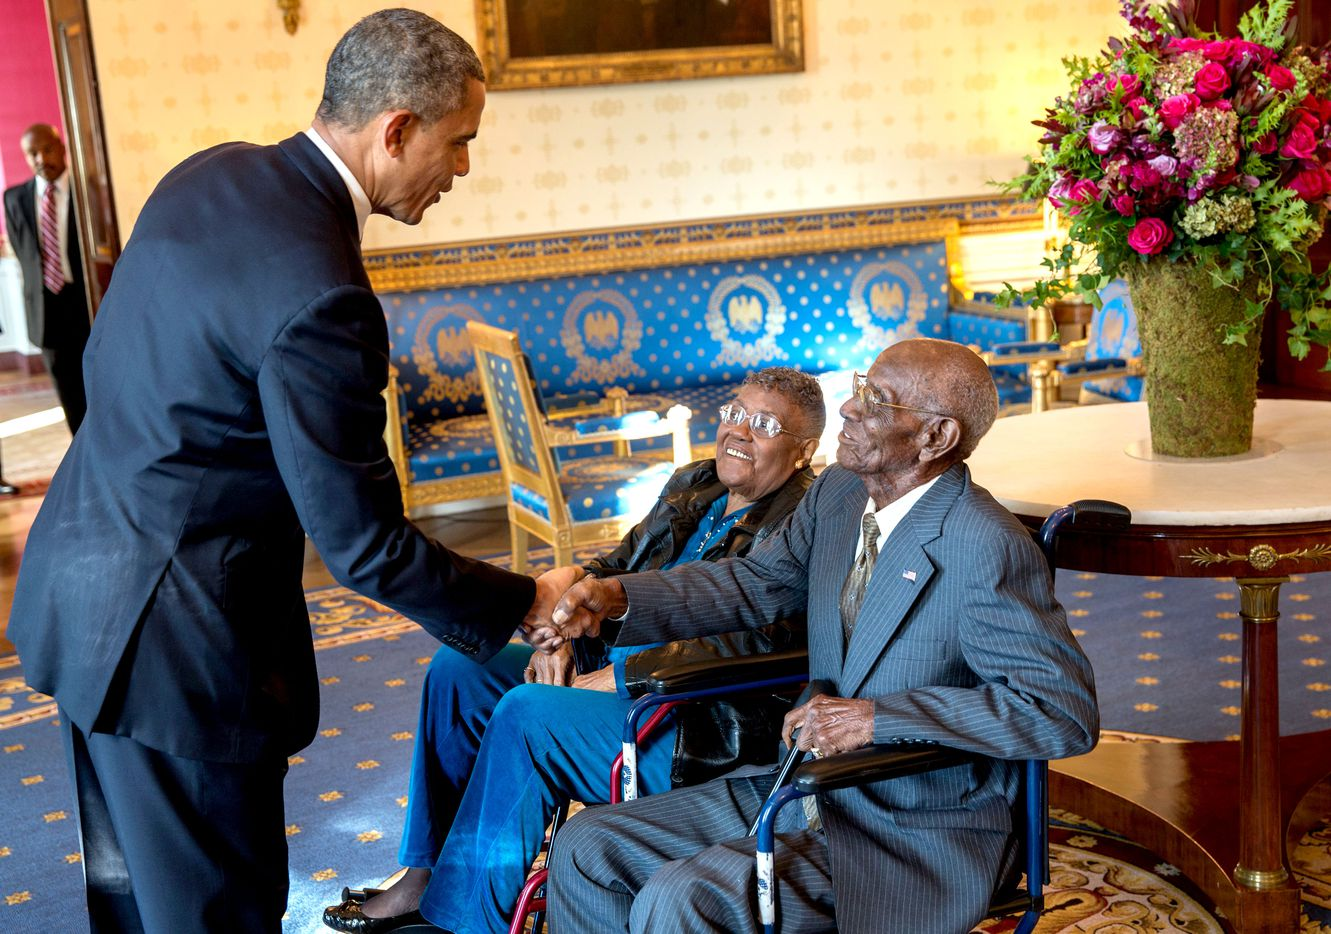 President Barack Obama greets Richard Overton, with Earlene Love-Karo, in the Blue Room of the White House, Nov. 11, 2013. Mr. Overton was attending the Veteran's Day Breakfast at the White House. (Lawrence Jackson/The White House)